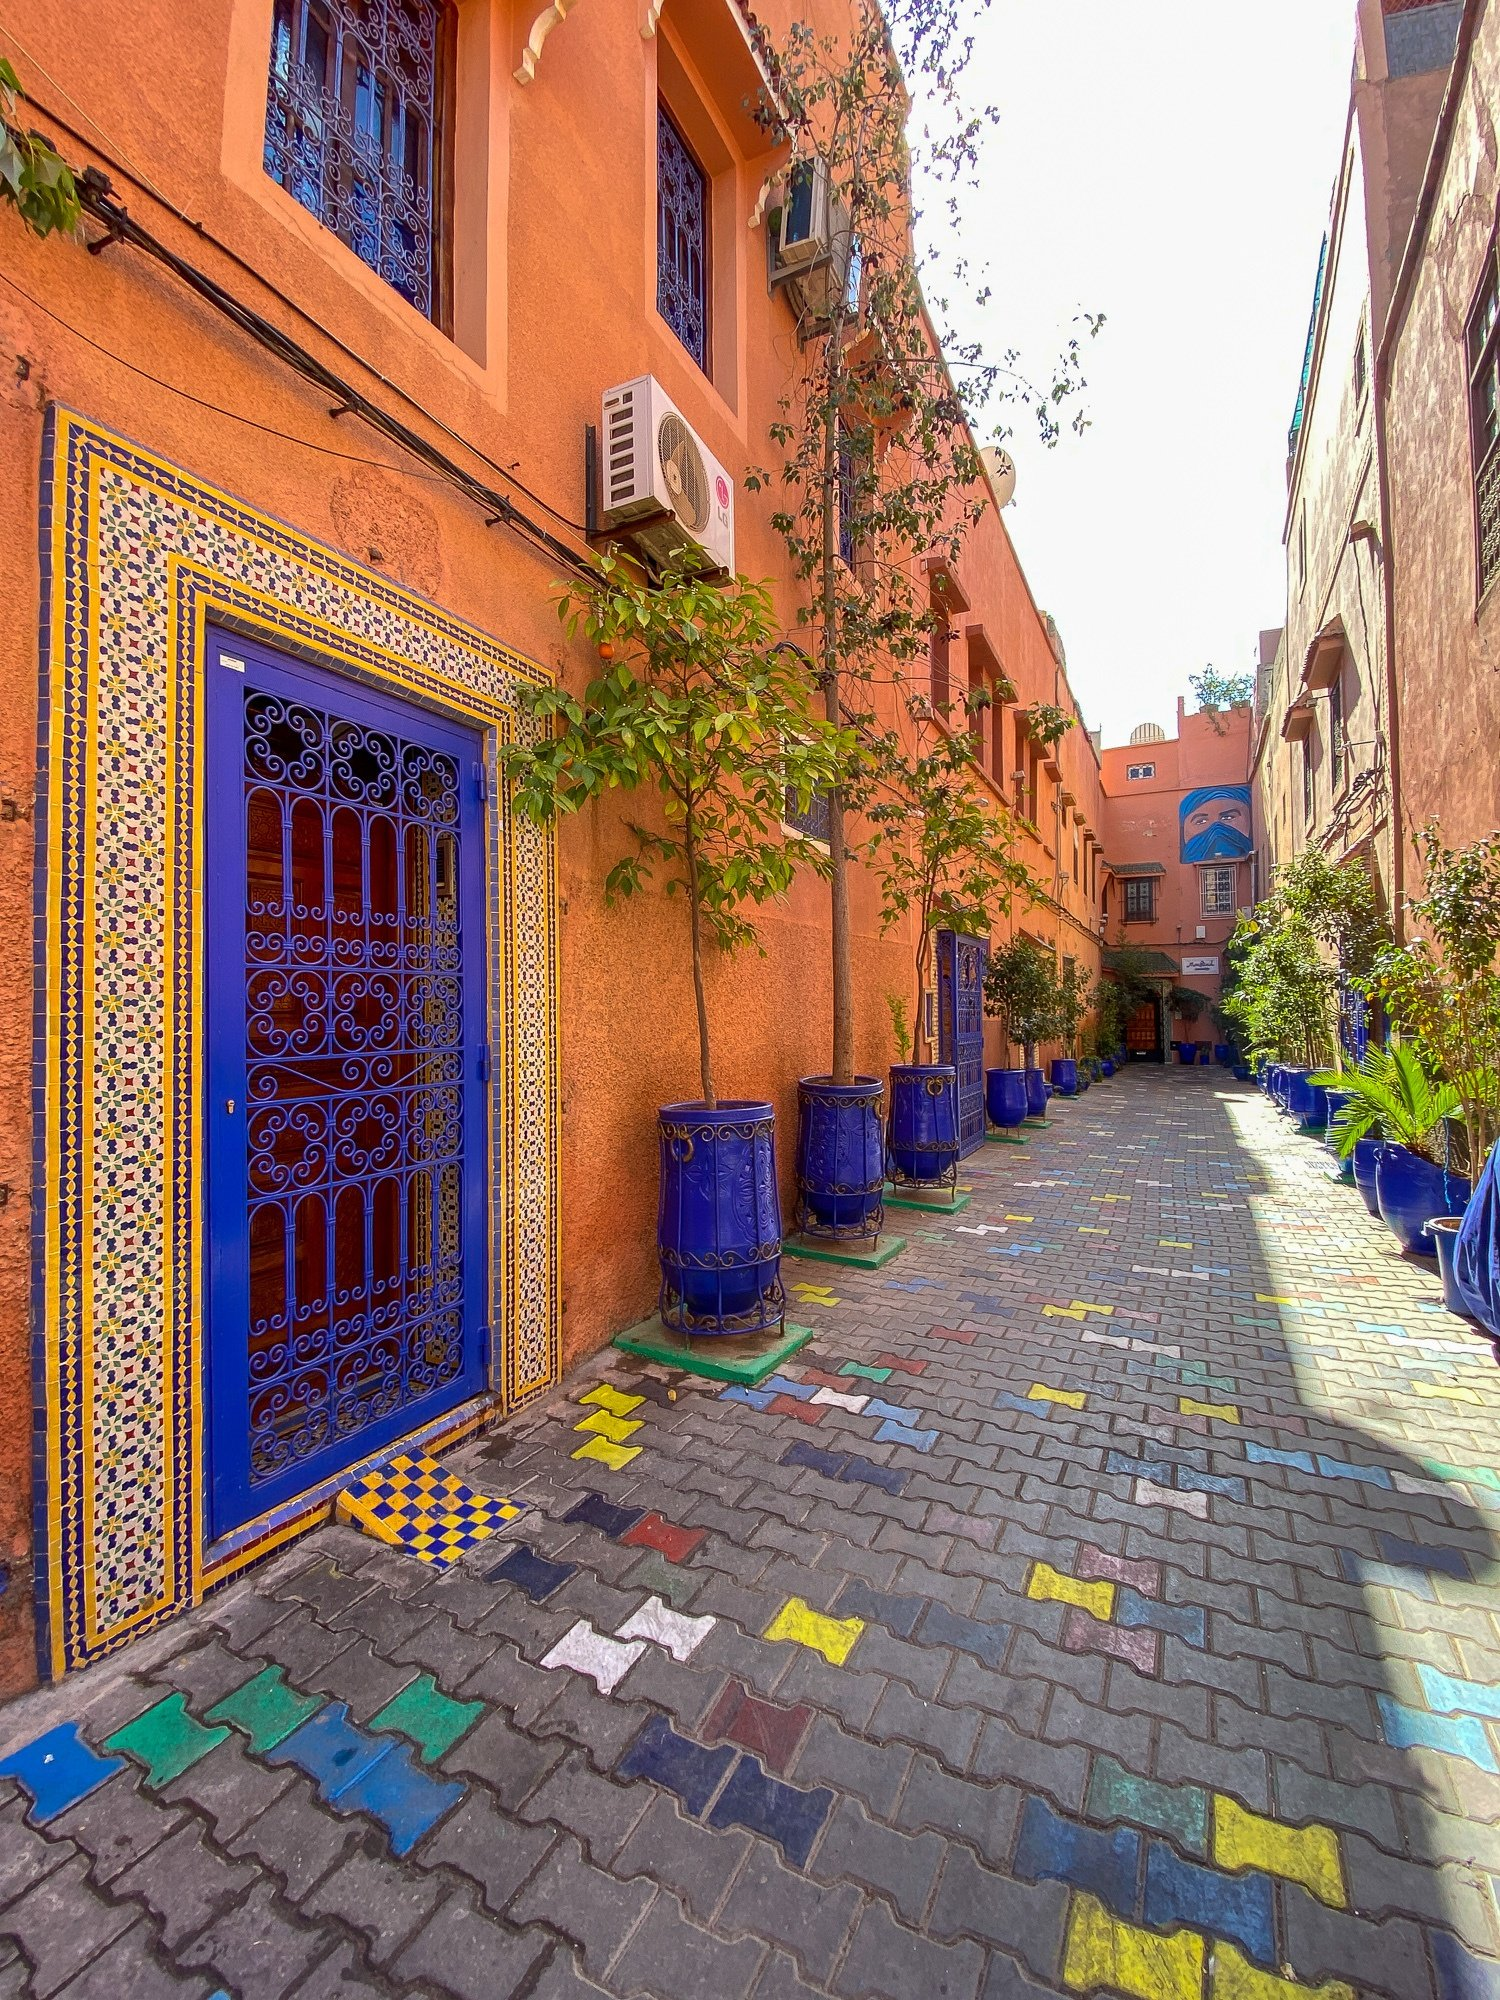 Beautiful Moroccan tiles in the Medina of Marrakech